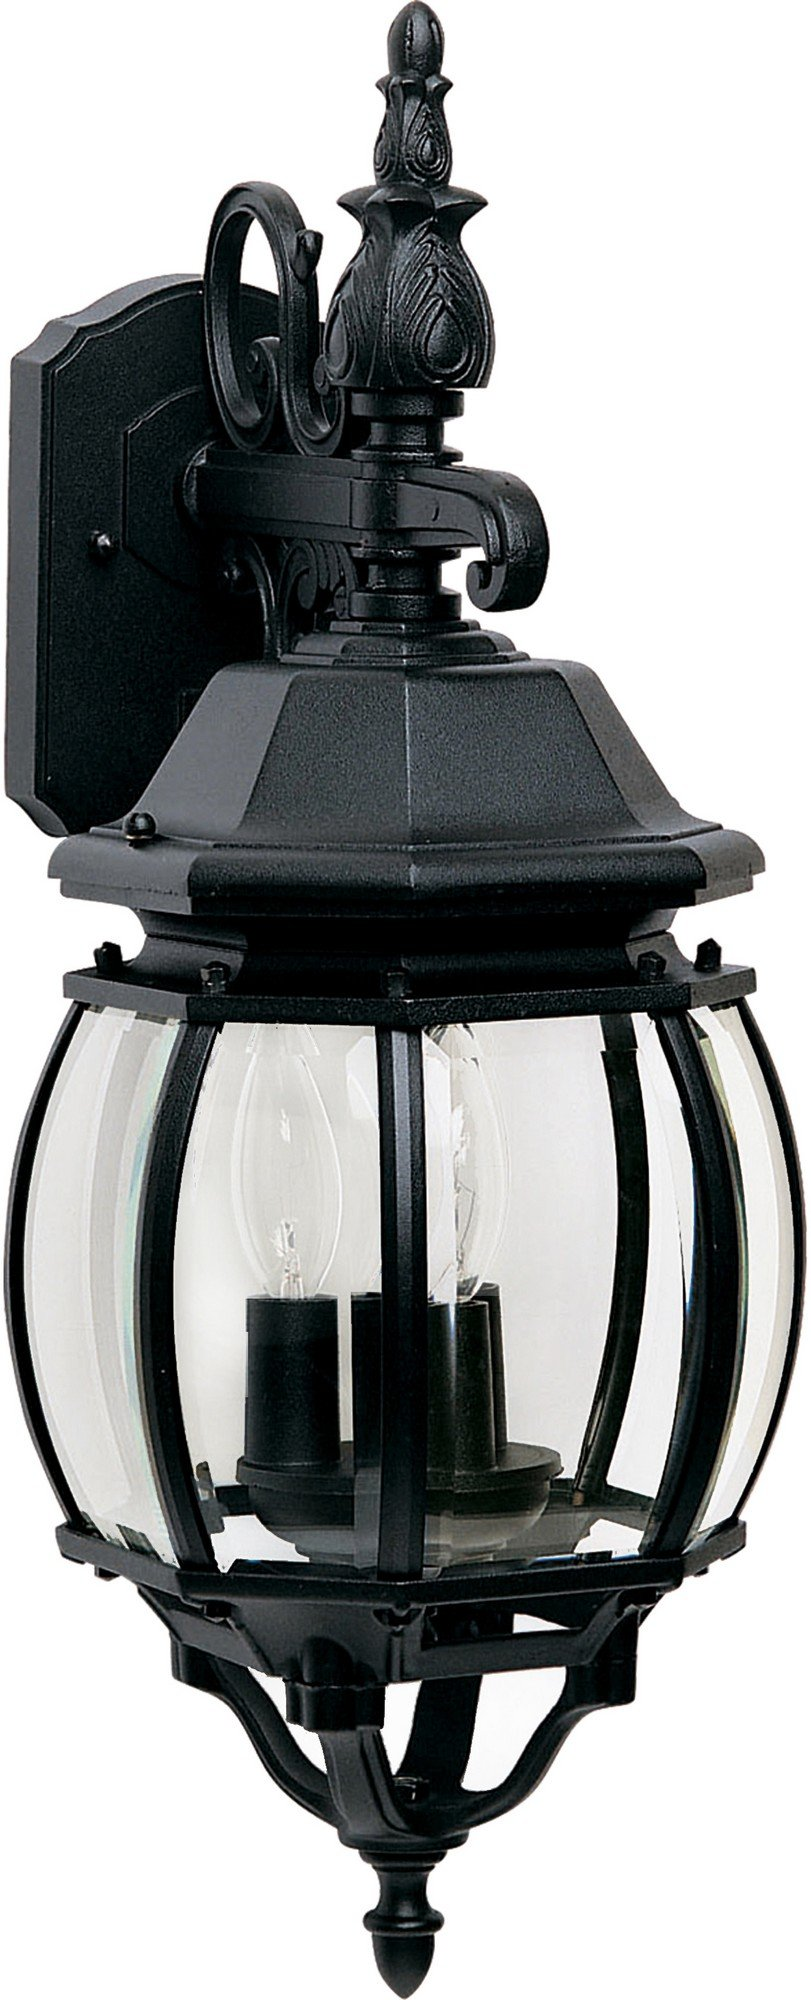 Maxim 1034BK Crown Hill 3-Light Outdoor Wall Lantern, Black Finish, Clear Glass, CA Incandescent Incandescent Bulb , 40W Max., Dry Safety Rating, Fabric Shade Material, Rated Lumens